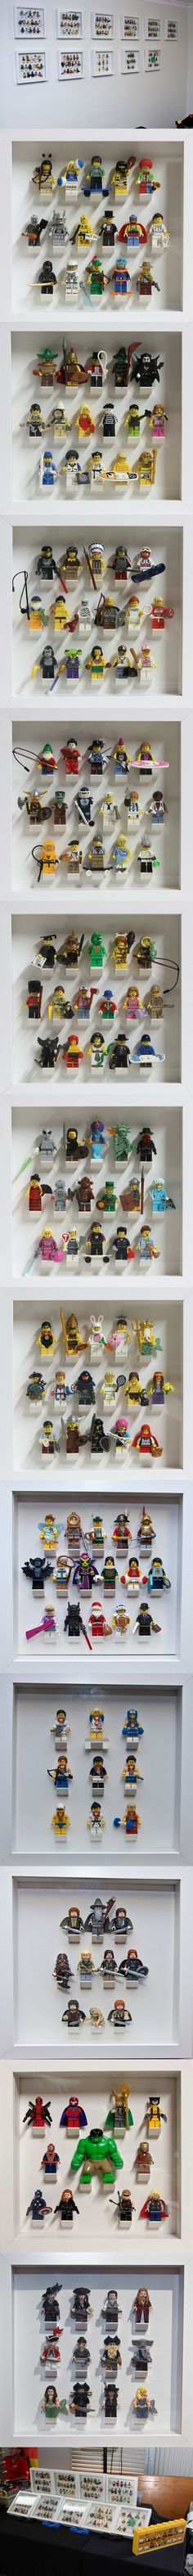 Collectible Minifigures in IKEA Ribba Frames #LEGO #Minifigures #IKEA